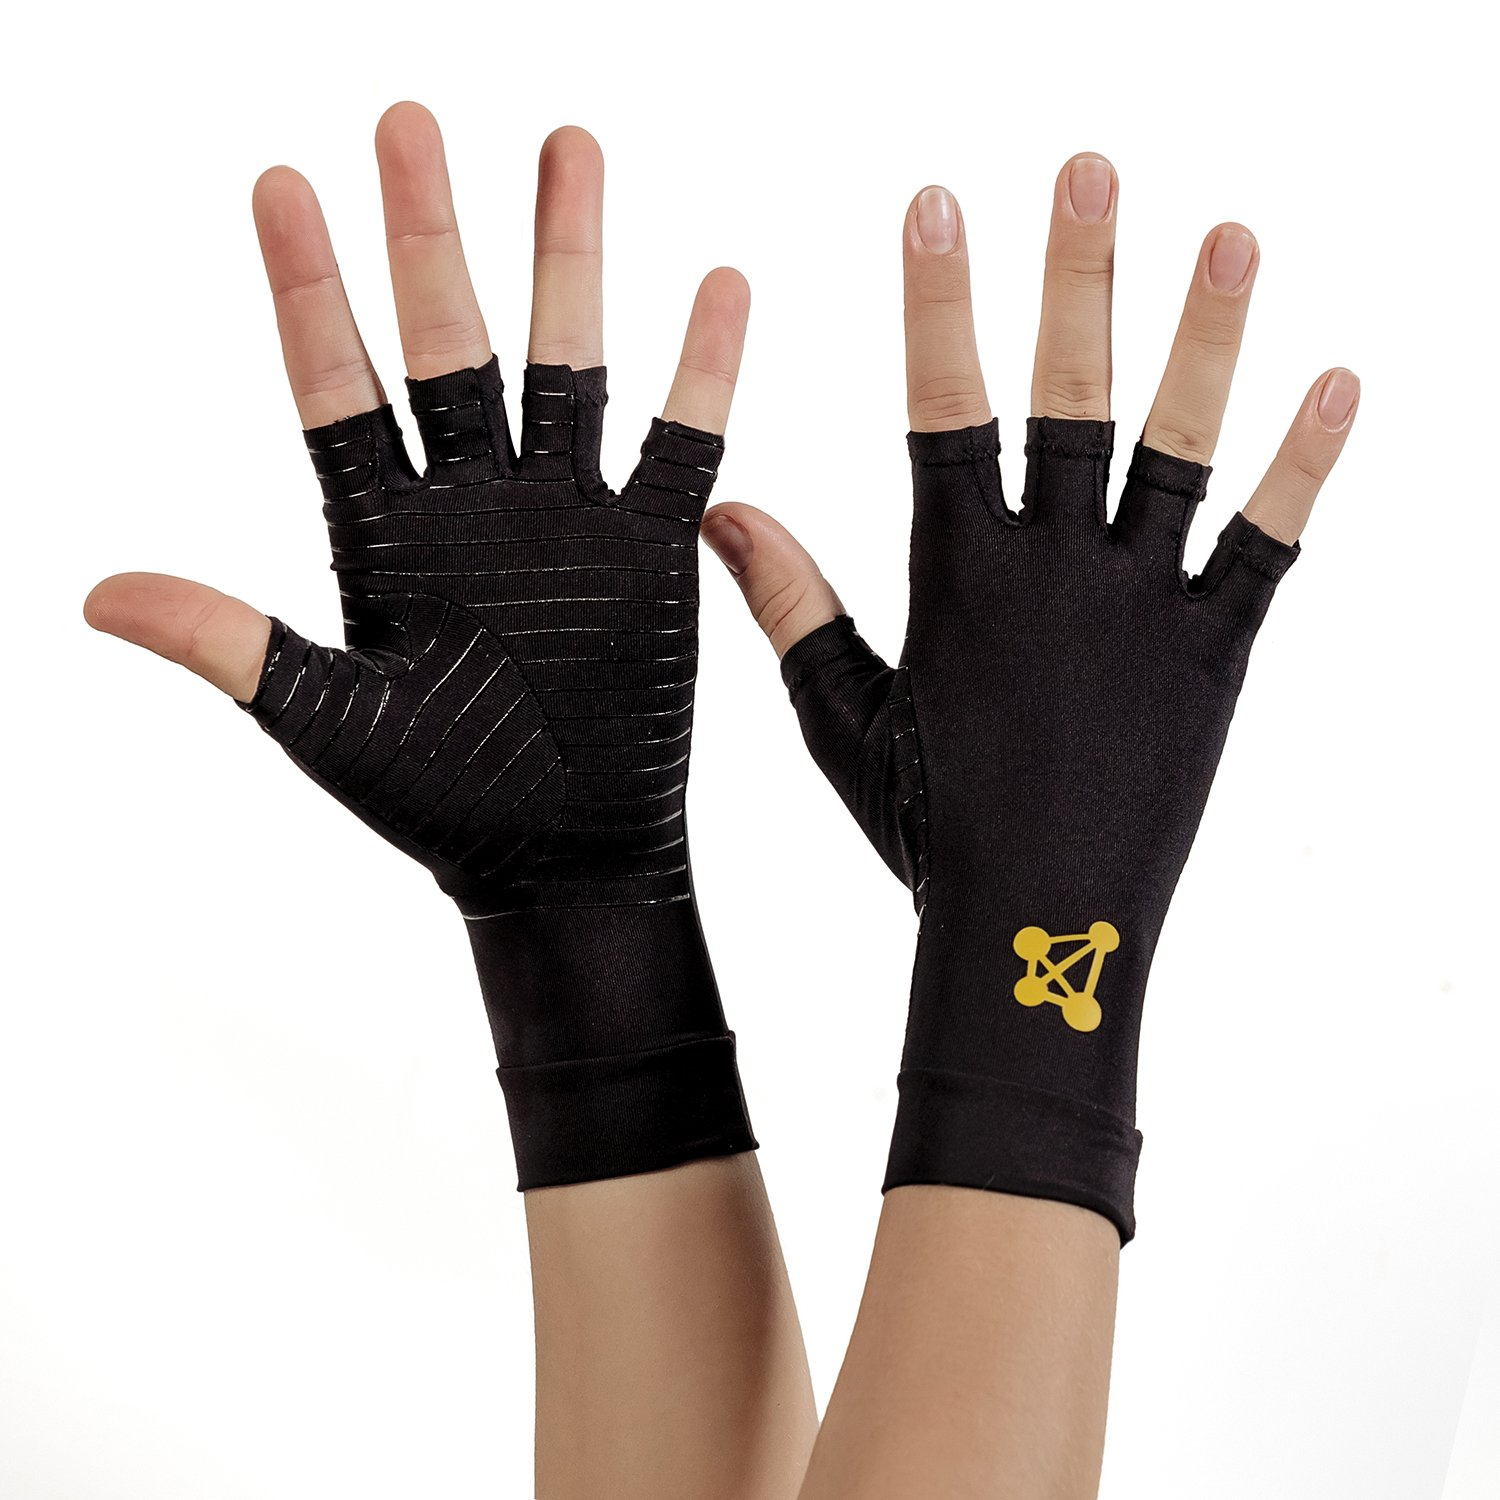 CopperJoint Copper-Infused Fingerless Compression Gloves, Designed to Support Enhanced Performance, Rapid Recovery and Pain Relief for All Lifestyles, Pair